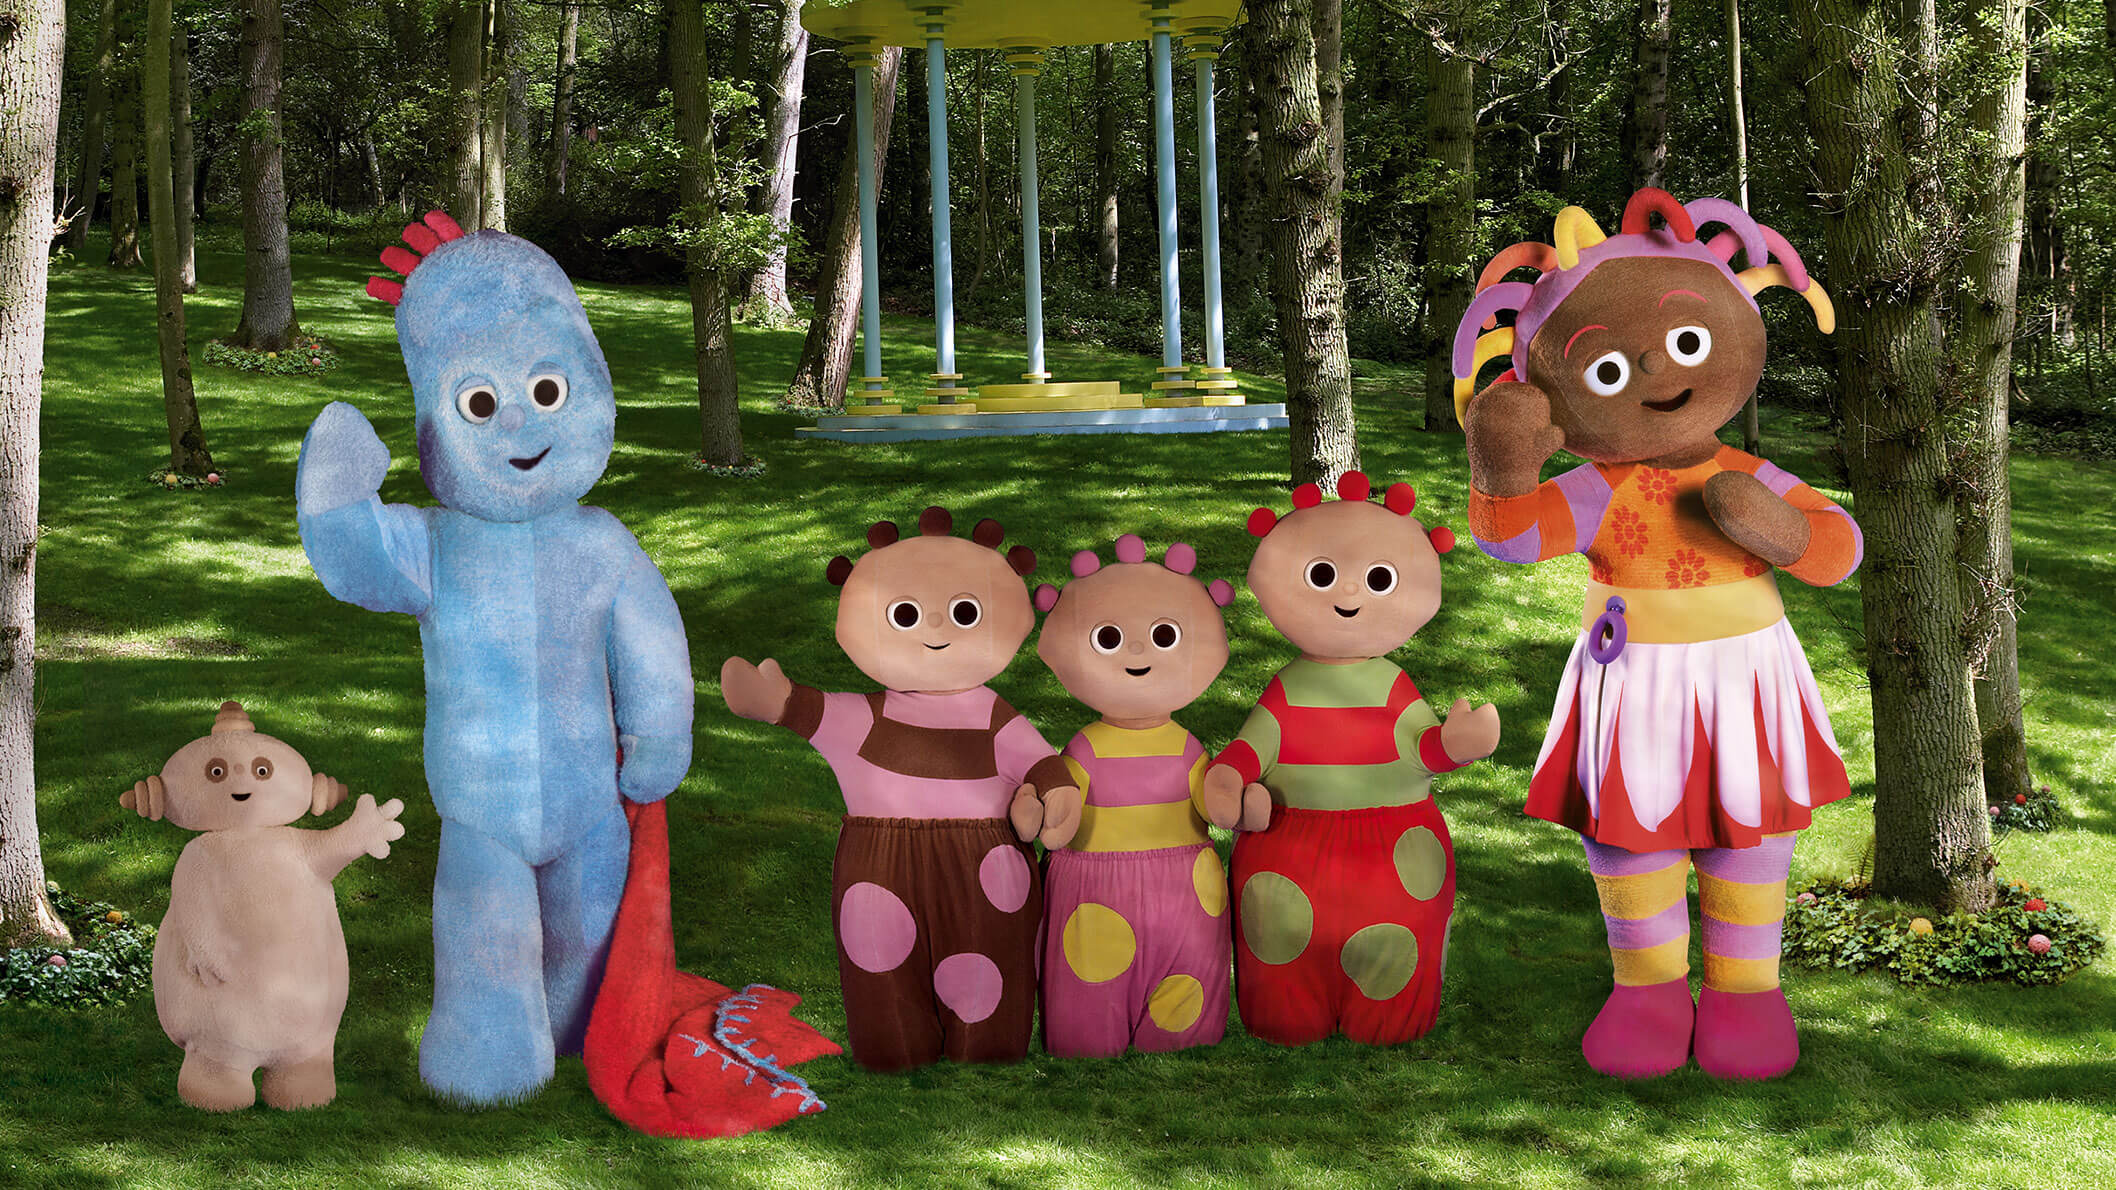 Six characters in various shapes and sizes standing in the middle of a park and waving.